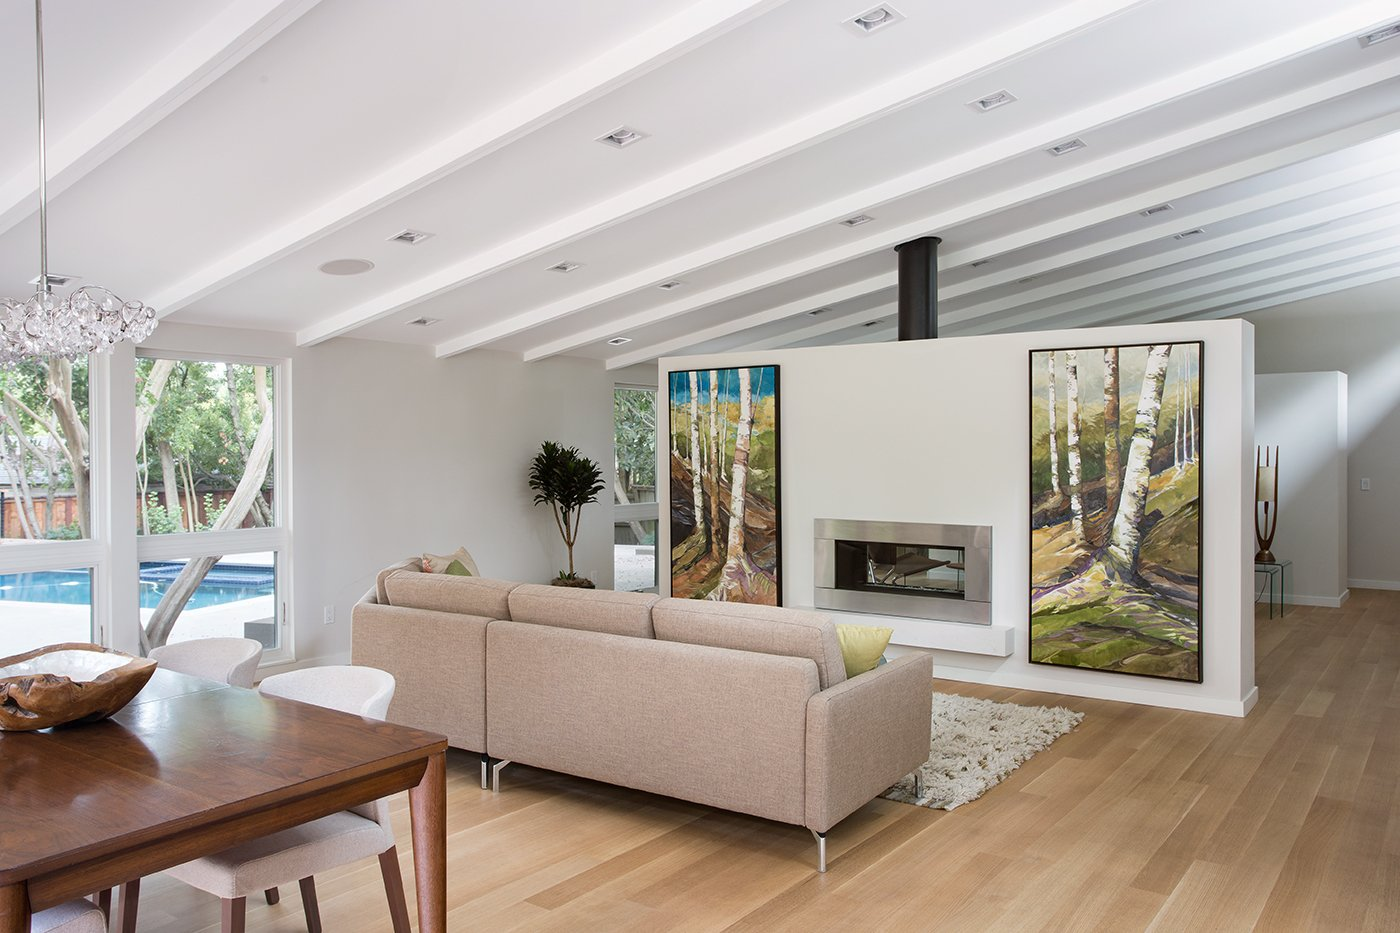 """Living Room, Sofa, Light Hardwood Floor, and Gas Burning Fireplace Lafayette Mid Century Modern Remodel   The owners of this property had been away from the Bay Area for many years, and looked forward to returning to an elegant mid-century modern house. The one they bought was anything but that. Faced with a """"remuddled"""" kitchen from one decade, a haphazard bedroom / family room addition from another, and an otherwise disjointed and generally run-down mid-century modern house, the owners asked Klopf Architecture and Envision Landscape Studio to re-imagine this house and property as a unified, flowing, sophisticated, warm, modern indoor / outdoor living space for a family of five.   Opening up the spaces internally and from inside to out was the first order of business. The formerly disjointed eat-in kitchen with 7 foot high ceilings were opened up to the living room, re-oriented, and replaced with a spacious cook's kitchen complete with a row of skylights bringing light into the space. Adjacent the living room wall was completely opened up with La Cantina folding door system, connecting the interior living space to a new wood deck that acts as a continuation of the wood floor. People can flow from kitchen to the living / dining room and the deck seamlessly, making the main entertainment space feel at once unified and complete, and at the same time open and limitless.   Klopf opened up the bedroom with a large sliding panel, and turned what was once a large walk-in closet into an office area, again with a large sliding panel. The master bathroom has high windows all along one wall to bring in light, and a large wet room area for the shower and tub. The dark, solid roof structure over the patio was replaced with an open trellis that allows plenty of light, brightening the new deck area as well as the interior of the house. Located in Lafayette, CA this remodeled single-family house is 3,363 square foot, 4 bedroom, and 3.5 bathroom.   Klopf Architecture"""